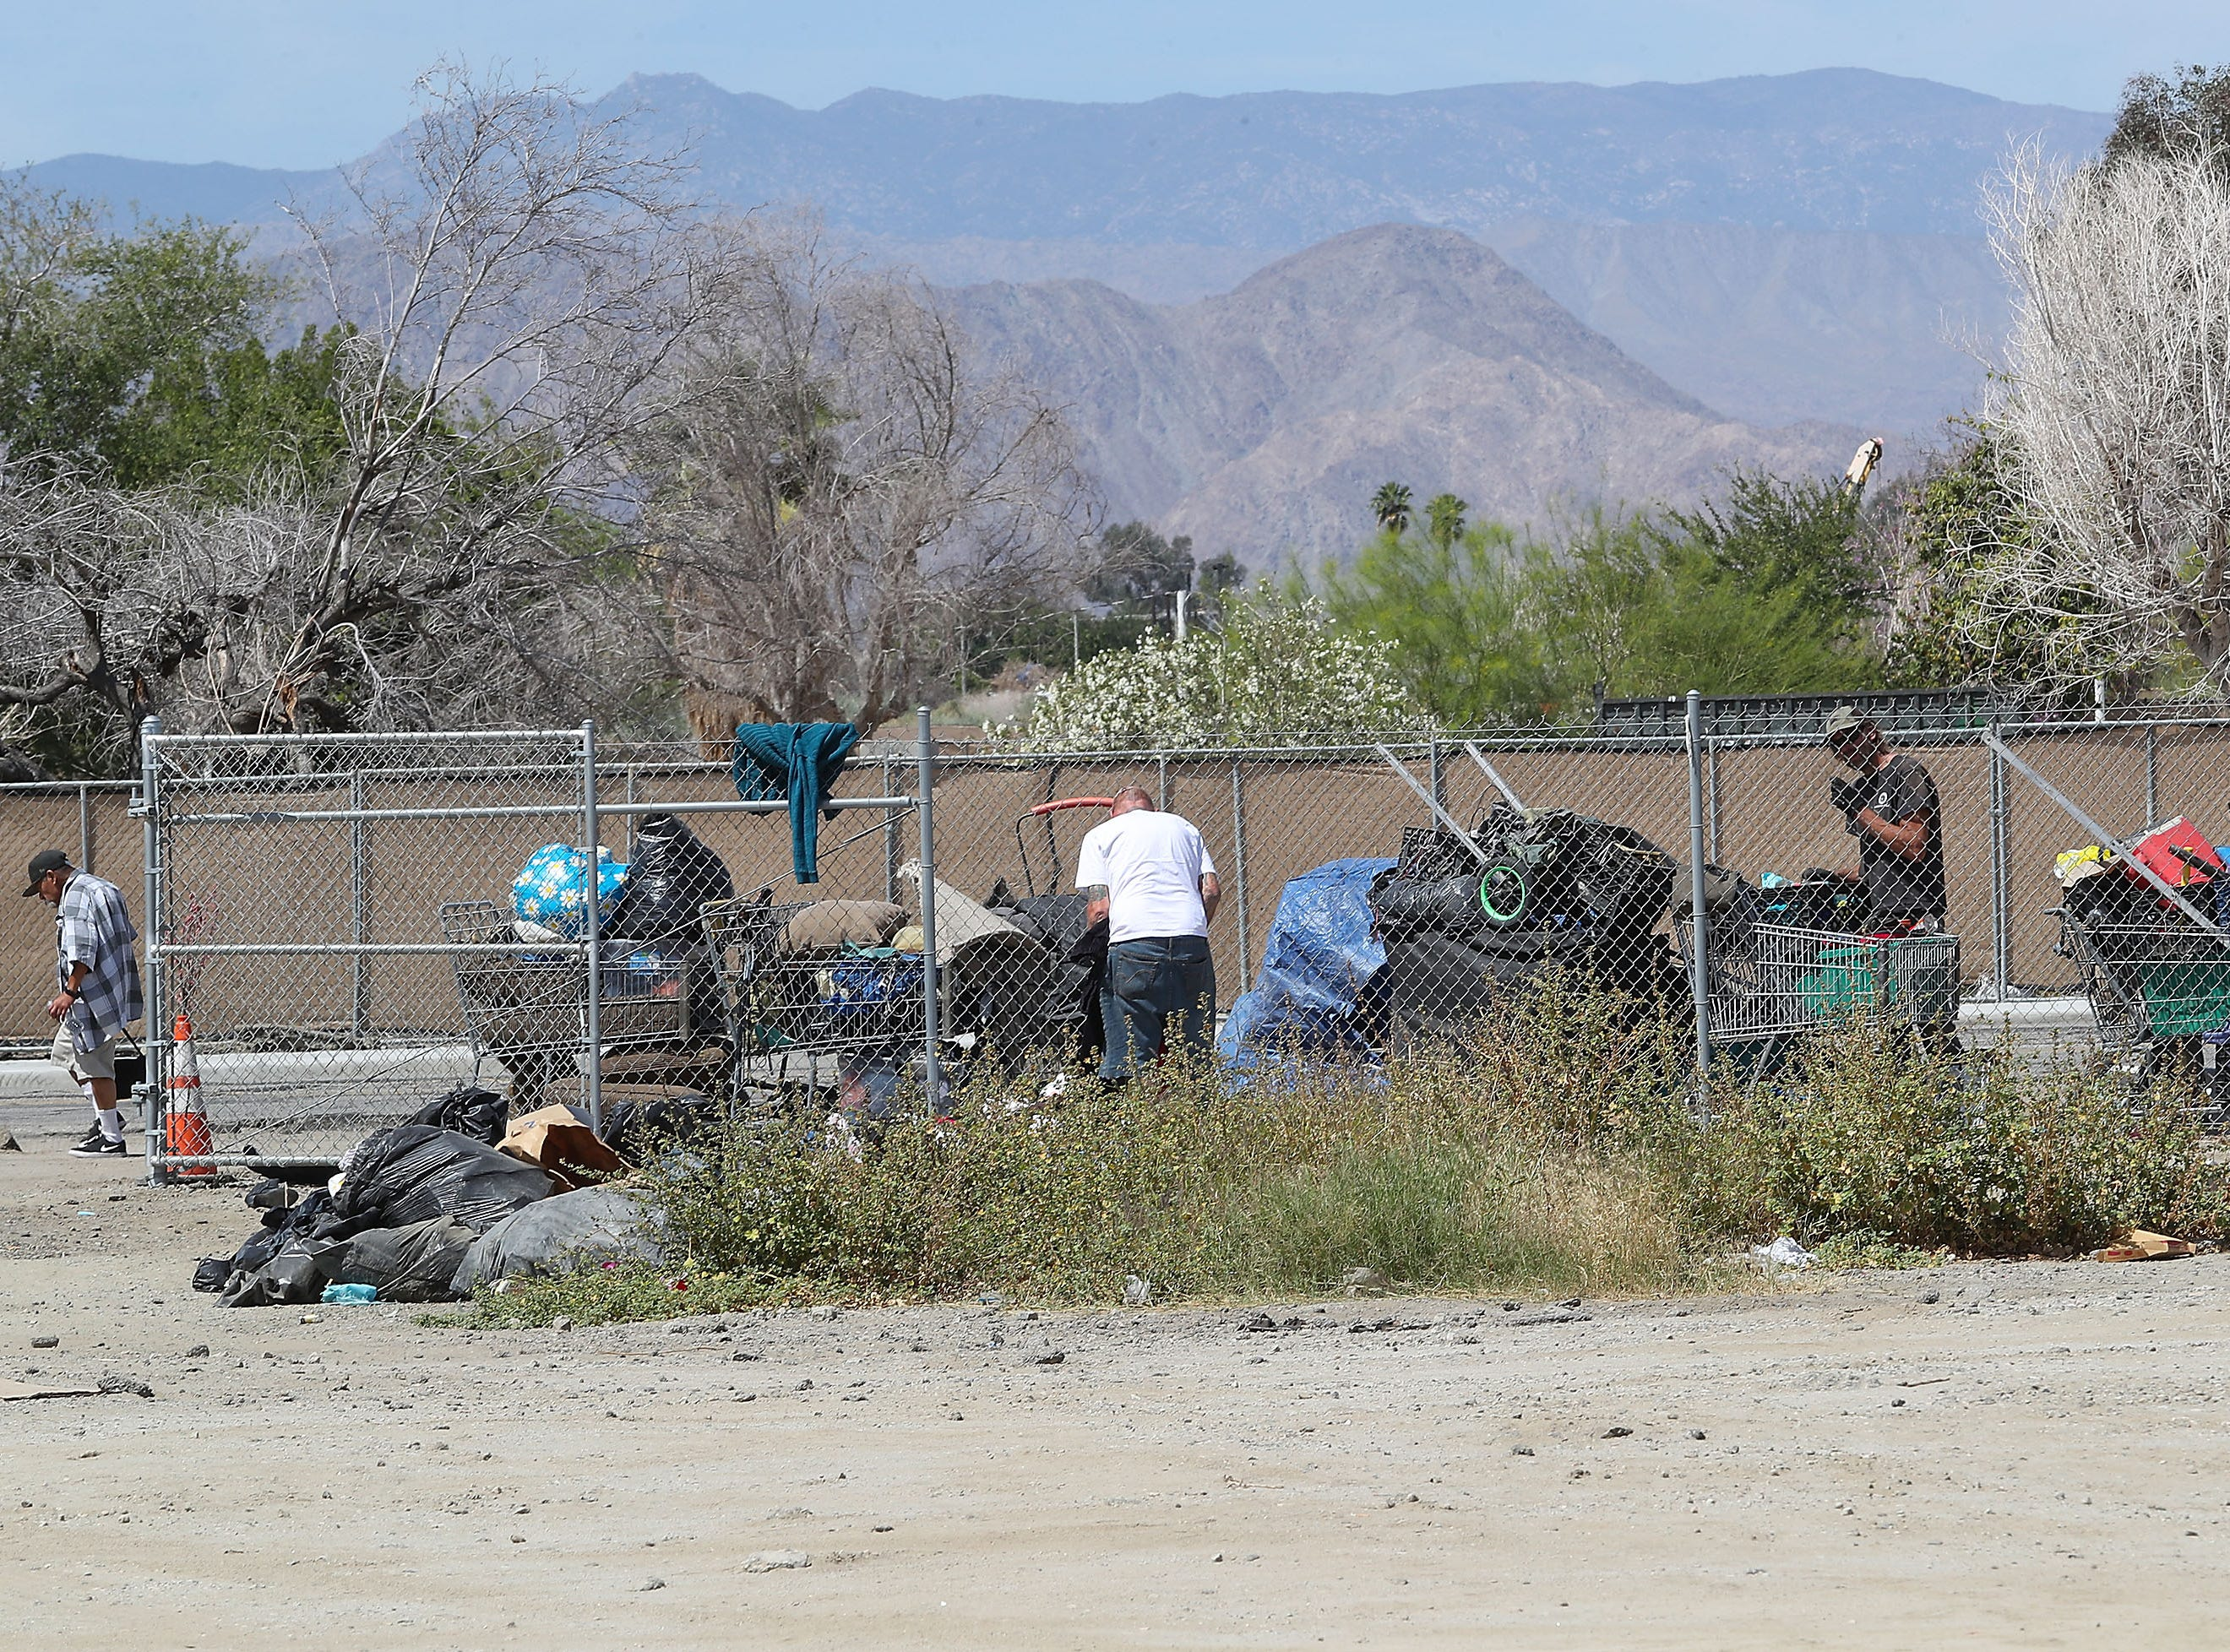 People experiencing homelessness prepare to move their camps and belongings off of a large vacant lot near the intersection of Highway 111 and Van Buren St. in Indio, April 9, 2019.